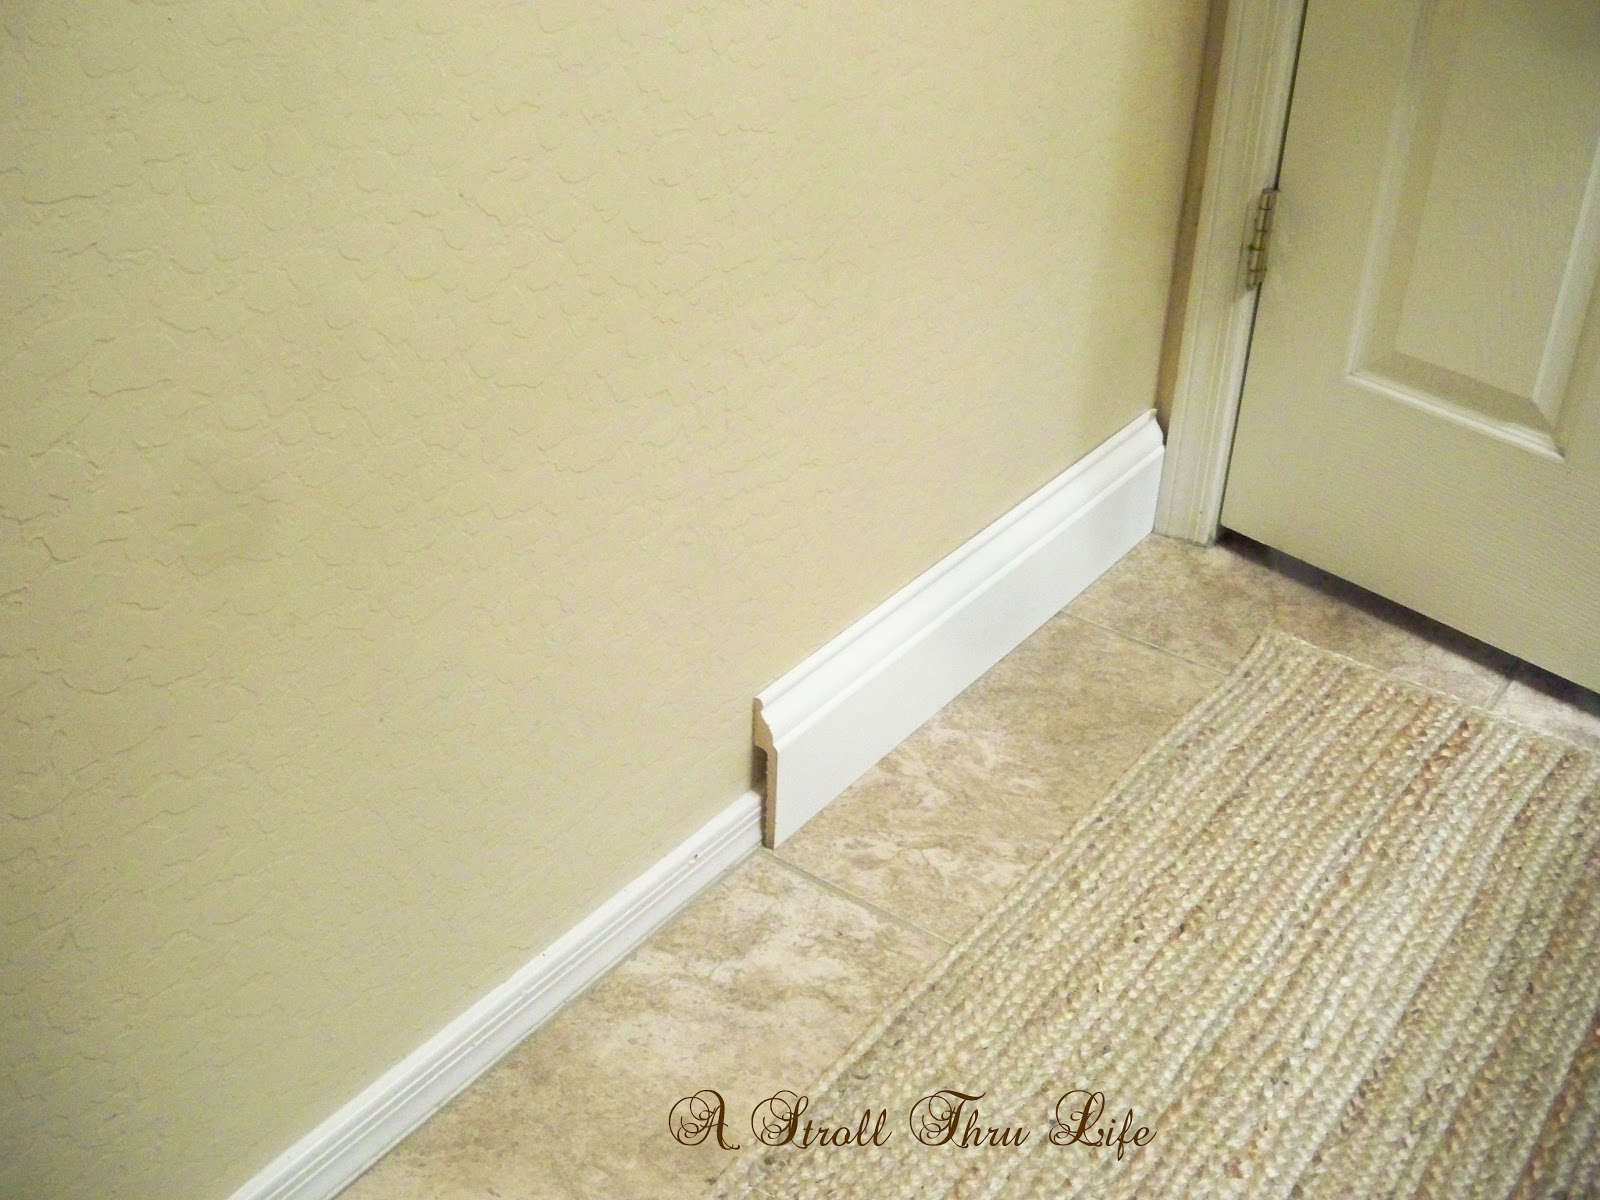 A Stroll Thru Life Install Wide Baseboard Molding Over Existing